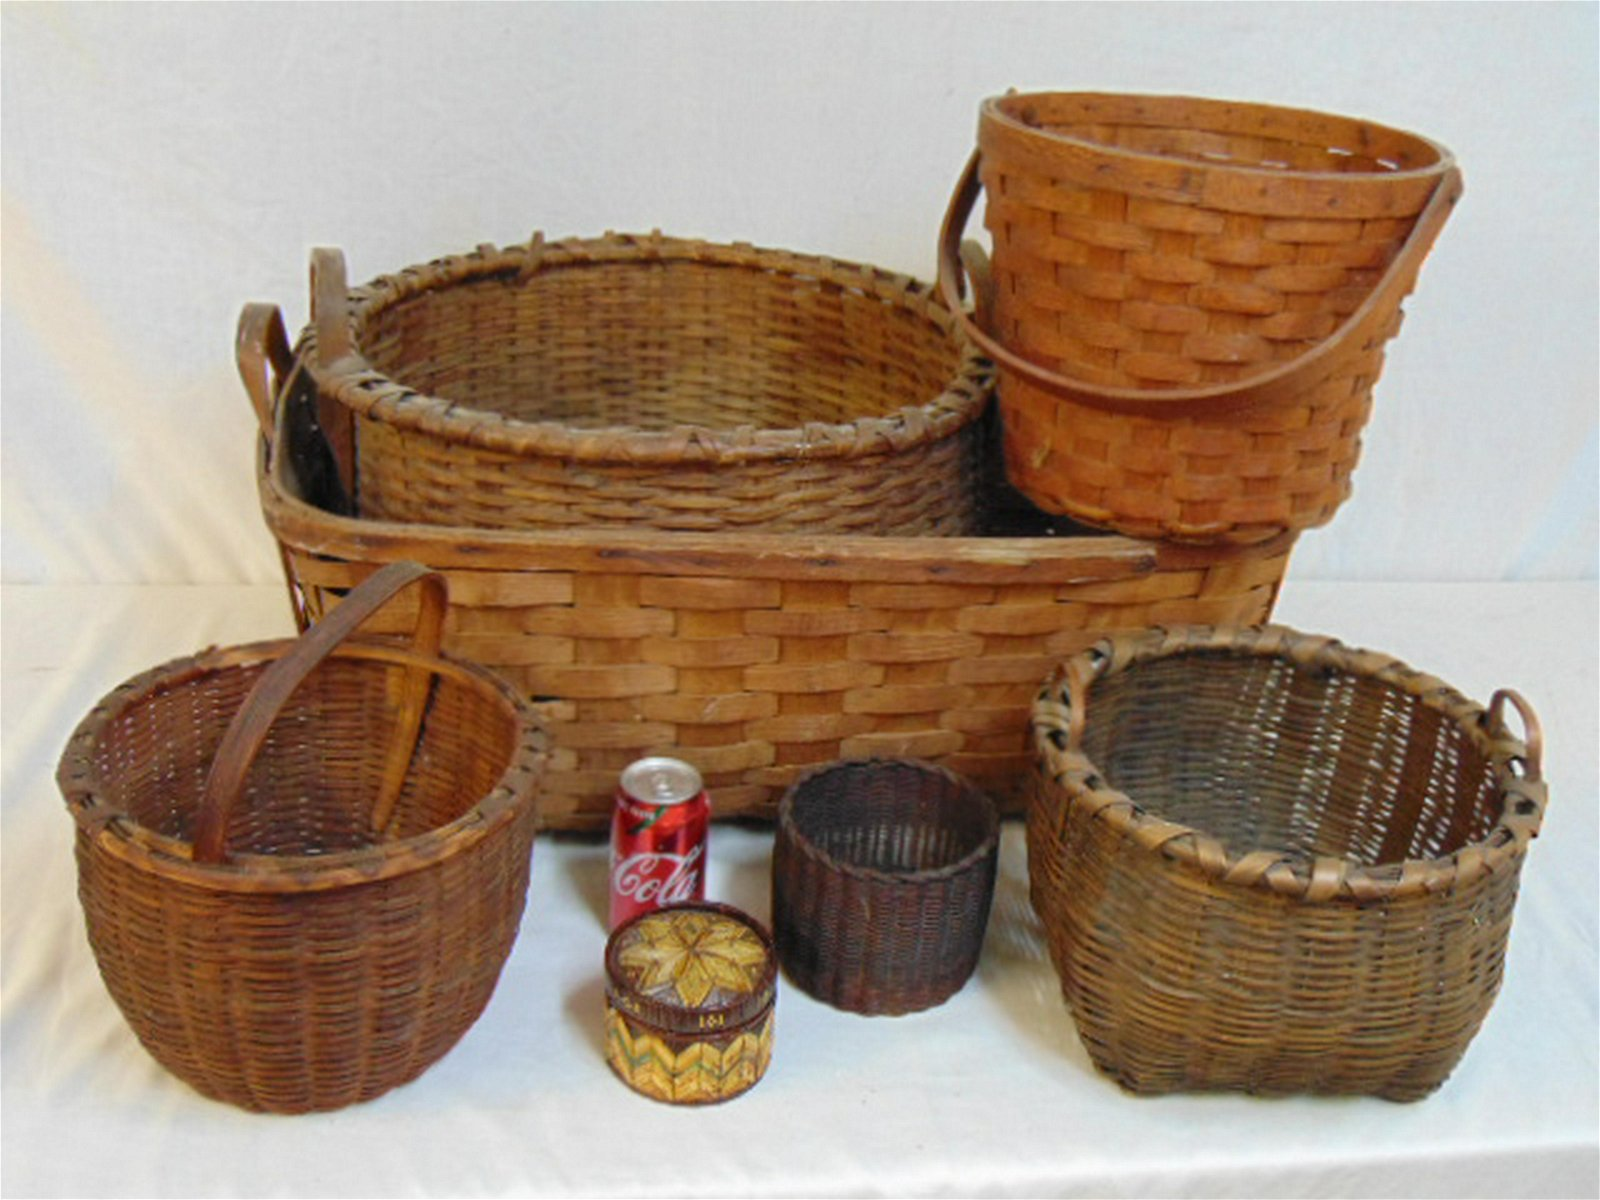 7 early baskets, large round & oblong baskets with